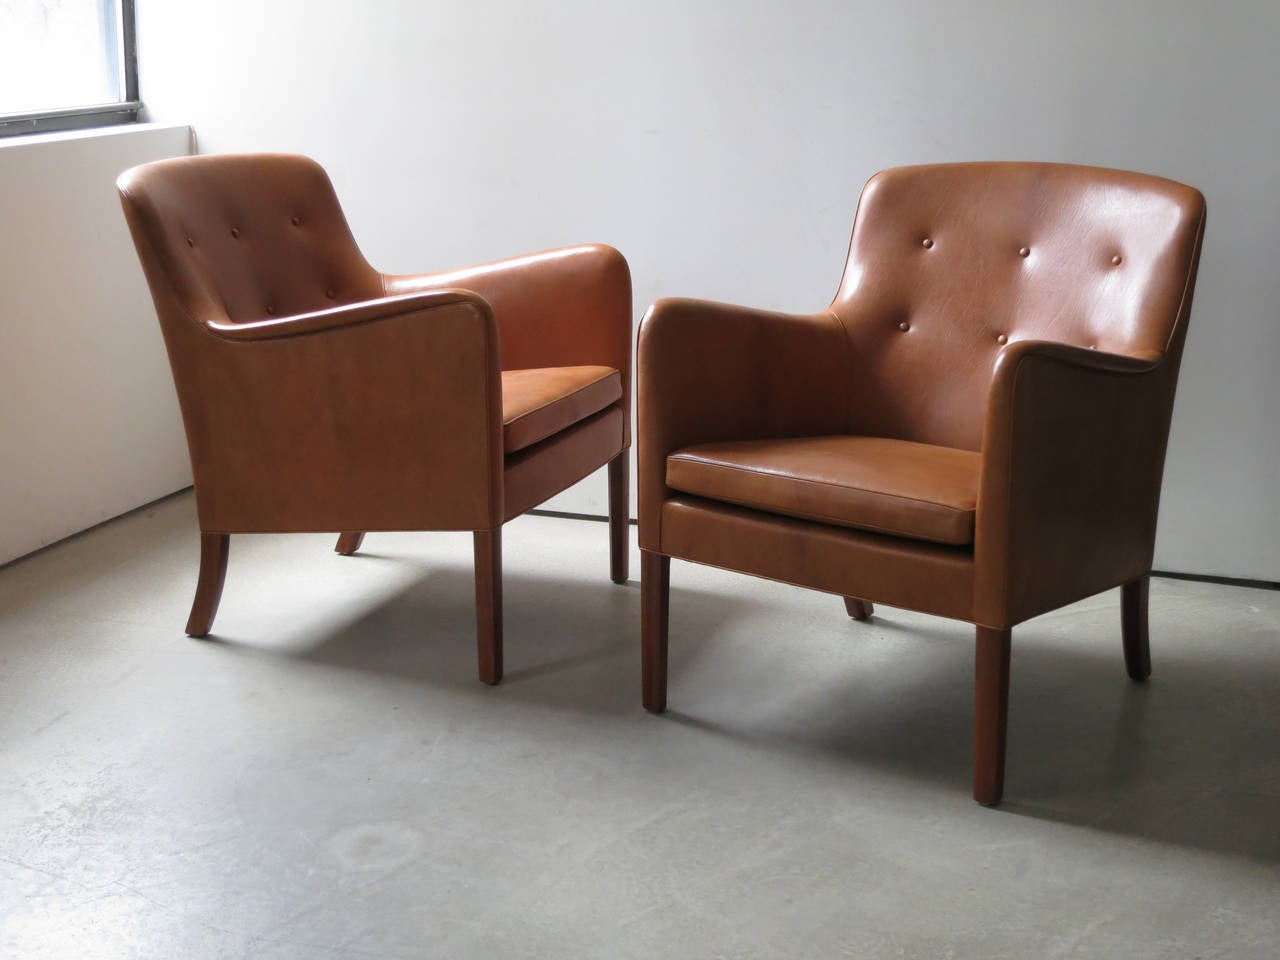 Danish Pair of 1940s Lounge Chairs in Nigerian Leather by Ole Wanscher